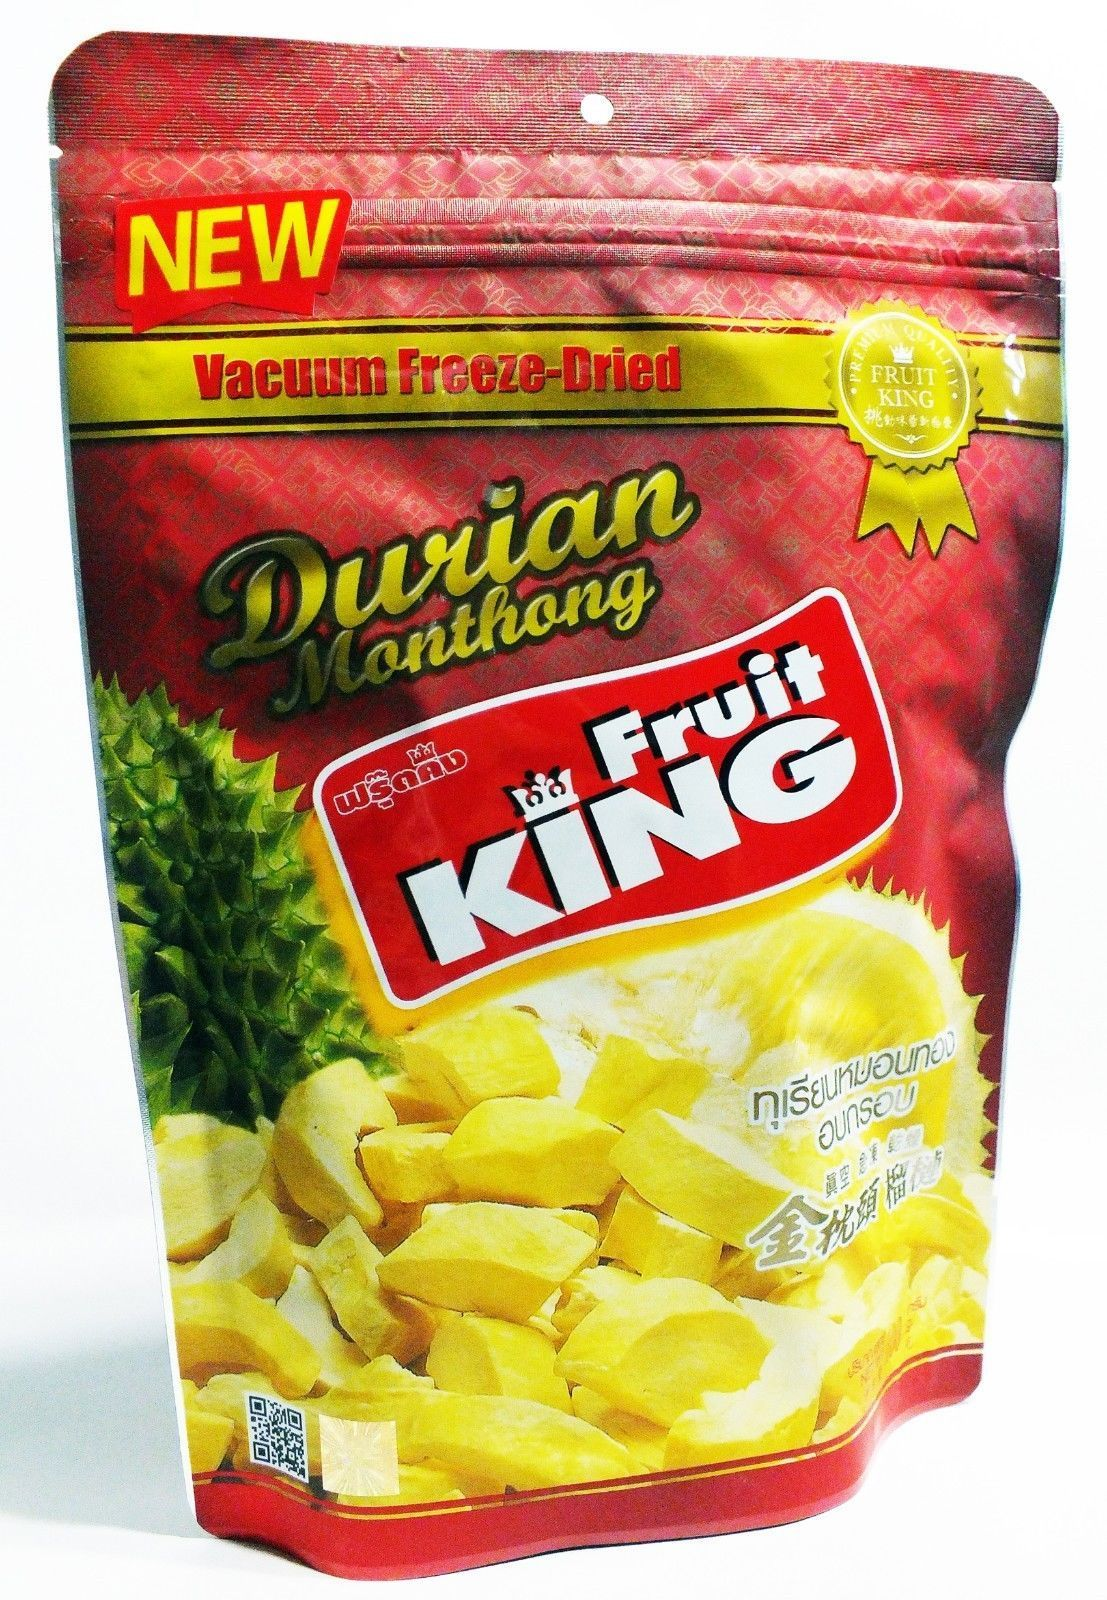 Fruit king durian monthong thailand snack natural healthy